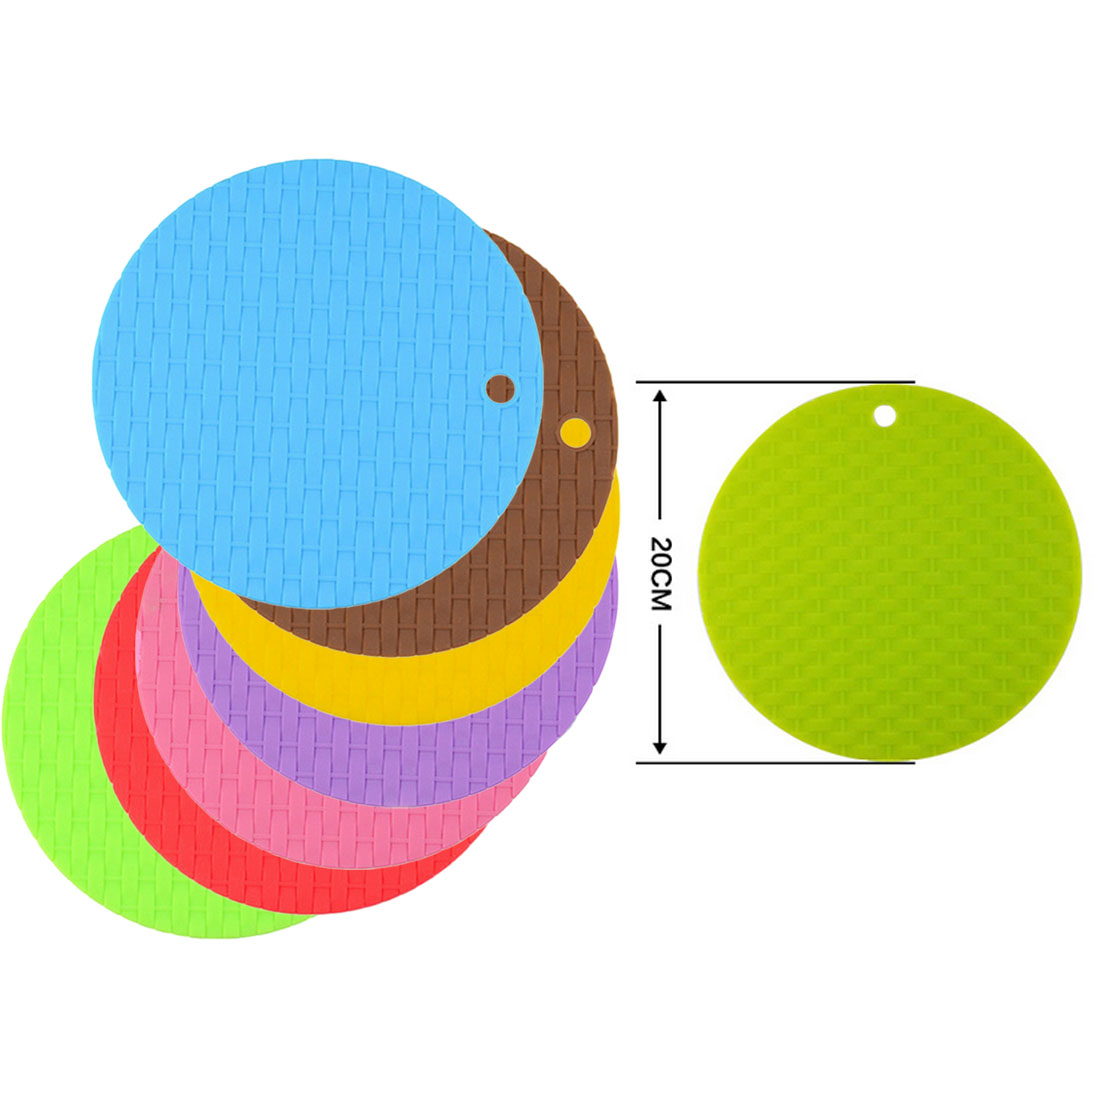 1Pc Round Non-Slip Heat Resistant Mat Coaster Cushion Placemat Pot Holder Silicone Table Mat Kitchen Accessories